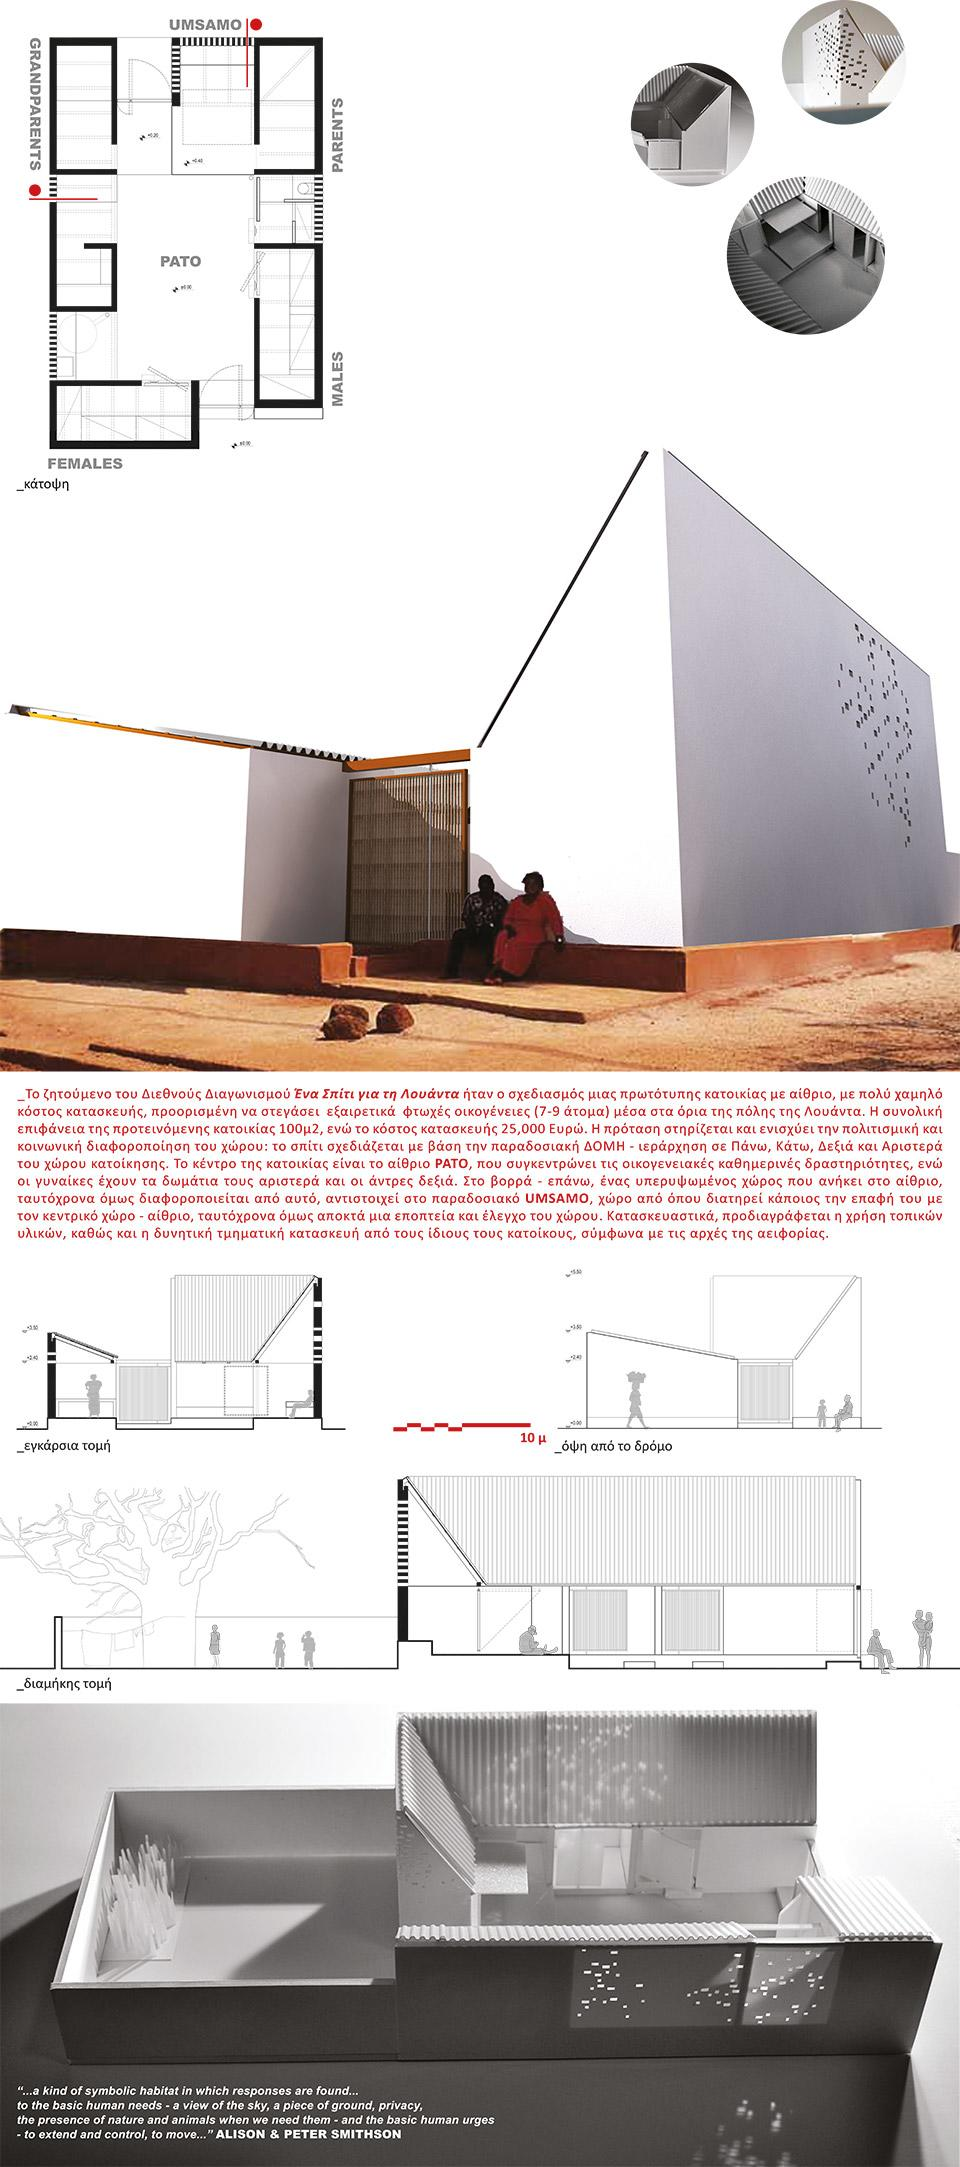 heliarch_luanda_presentation_final